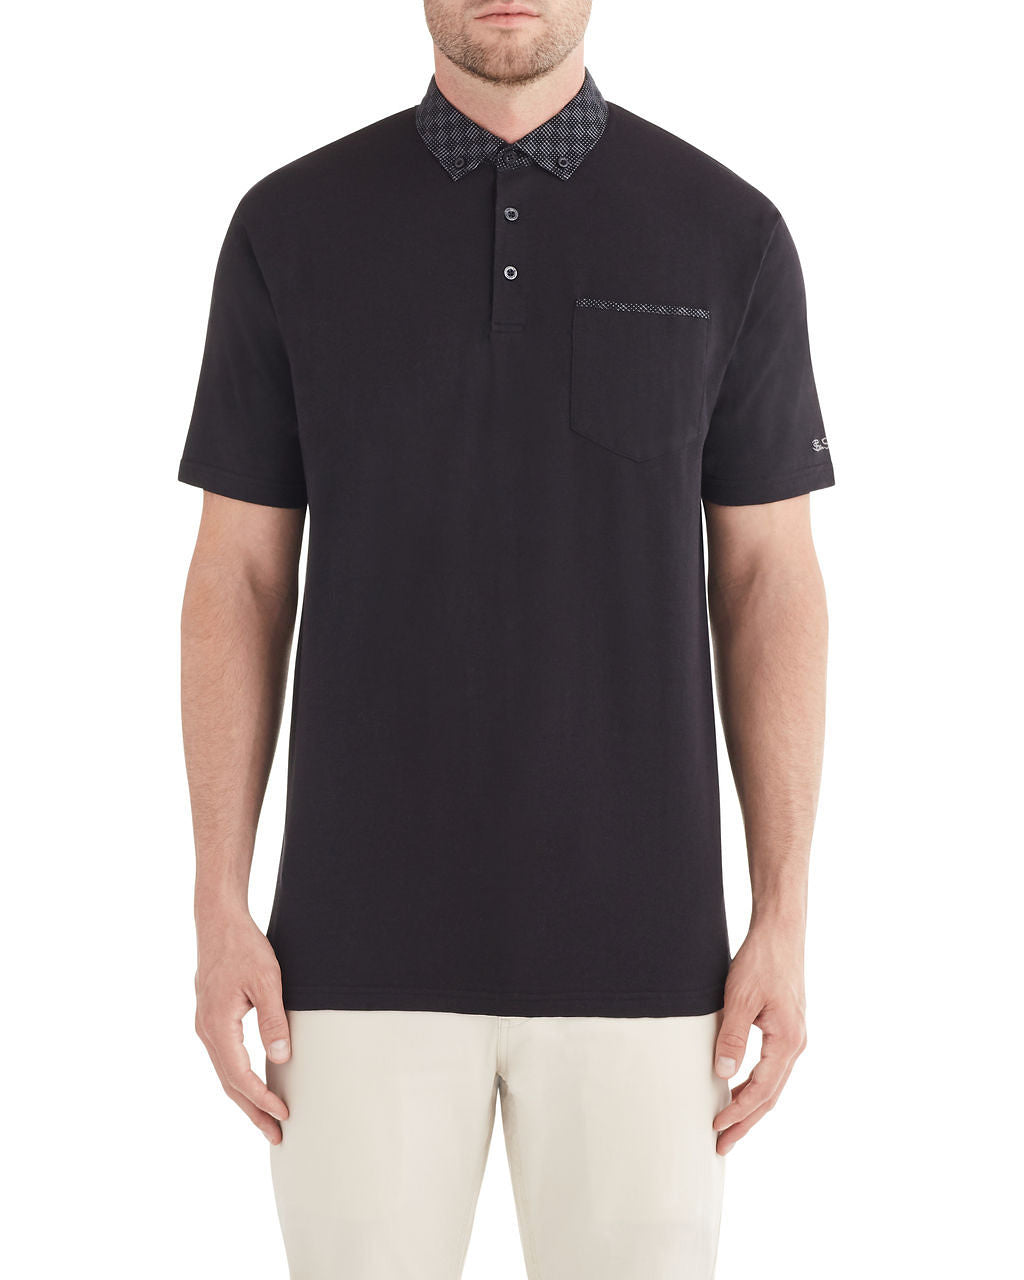 Woven Jacquard Collar Polo Shirt - Black